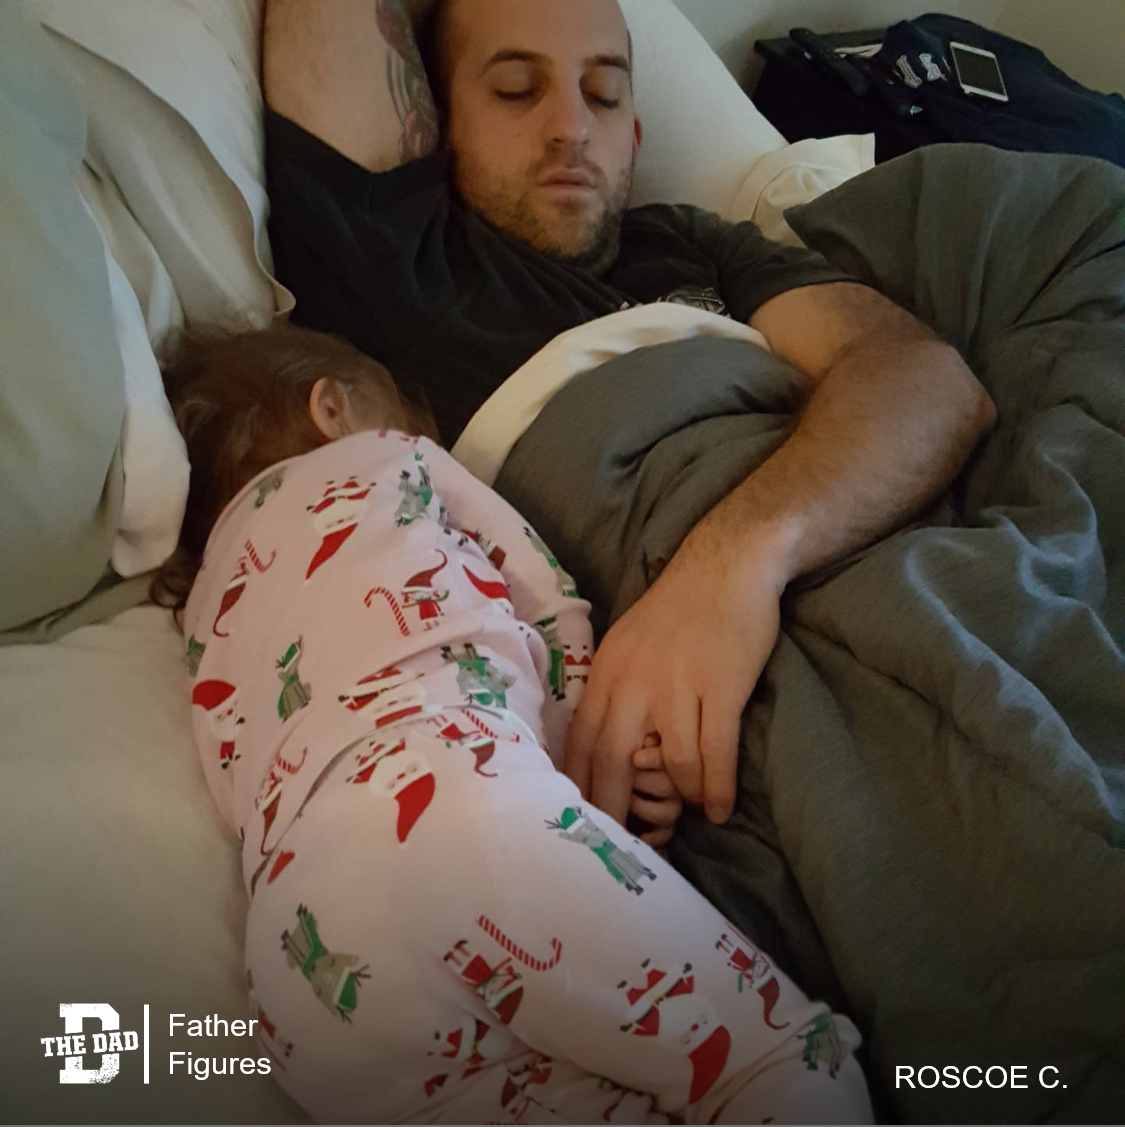 Father Figures: This is Fatherhood